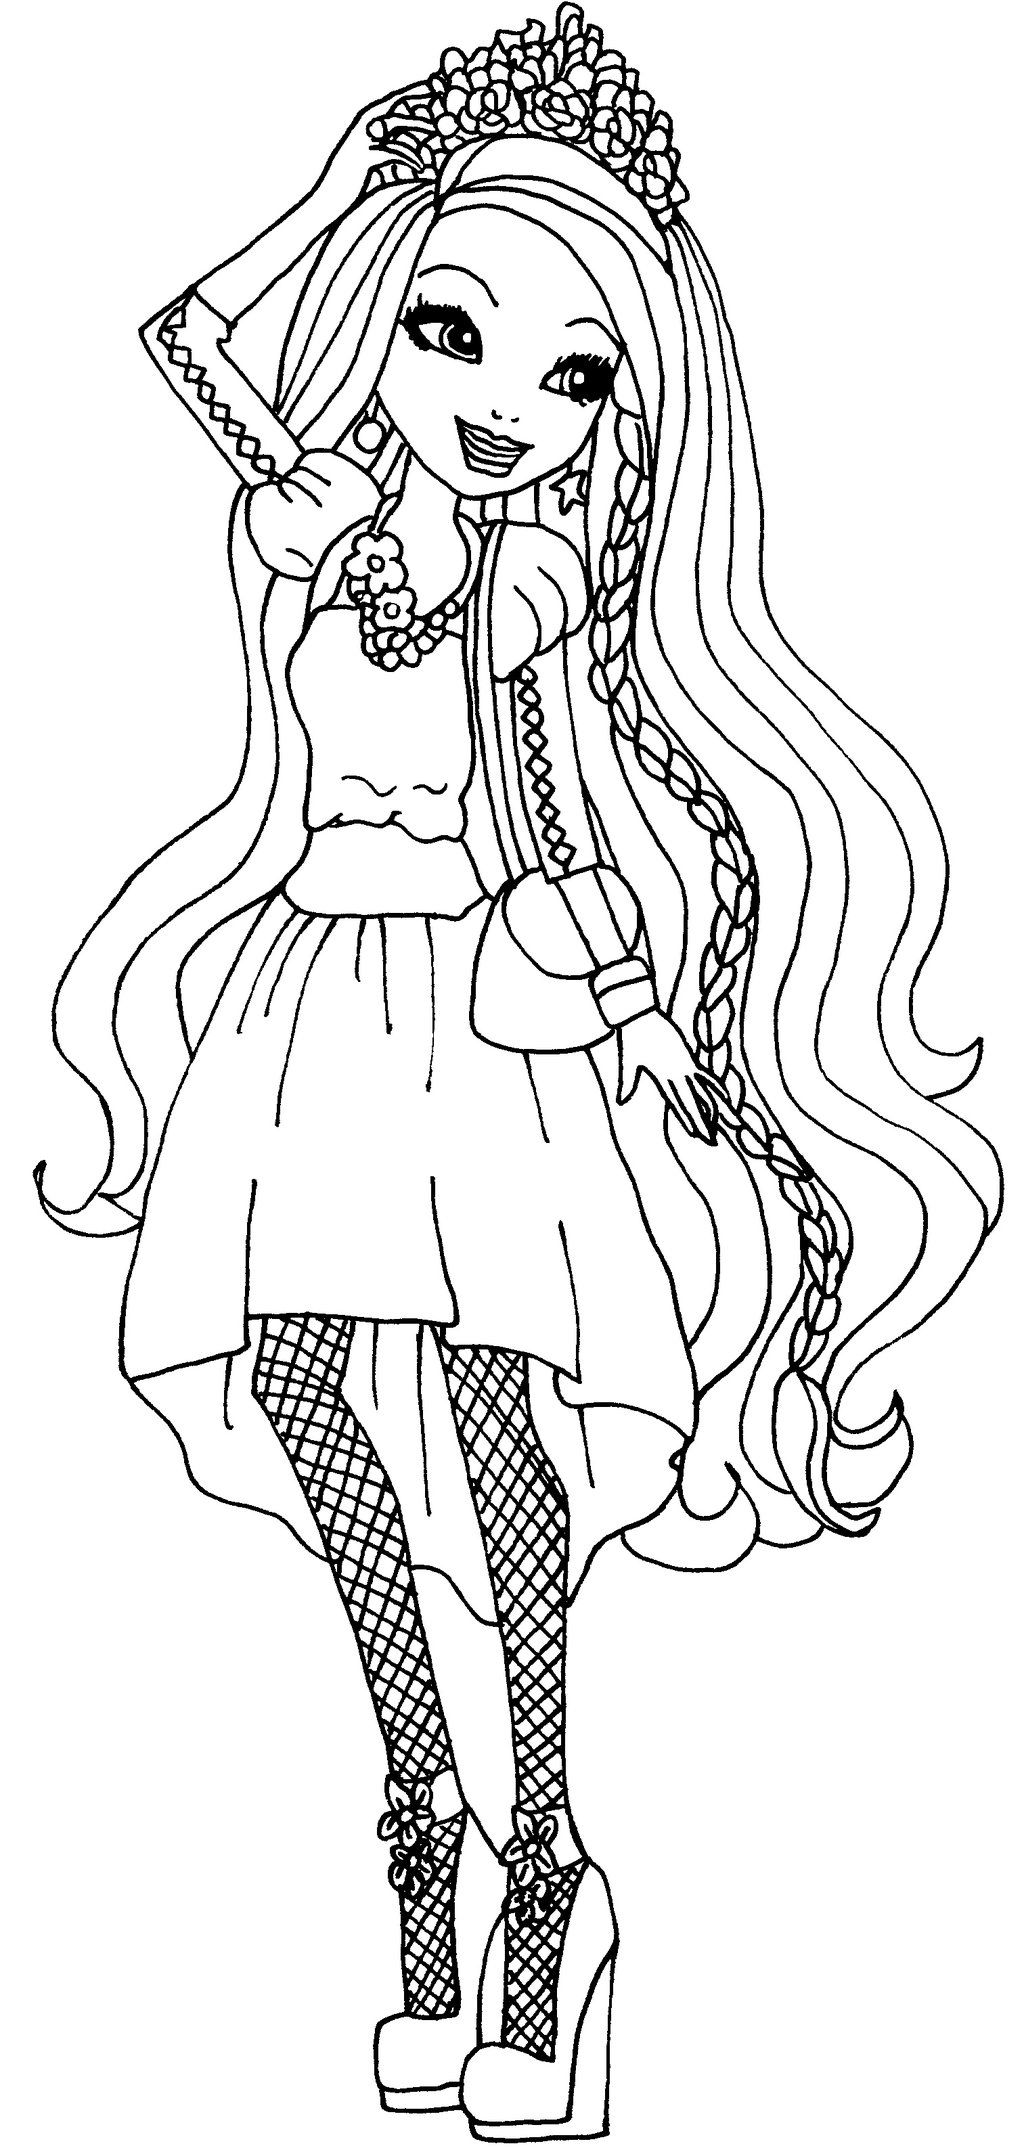 Free printable coloring pages rapunzel - A Coloring Page Of Holly O Hair From Ever After High She Is Part Of Rapunzel As The Next Rapunzel And She Is A Student At Ever After High On The Holly